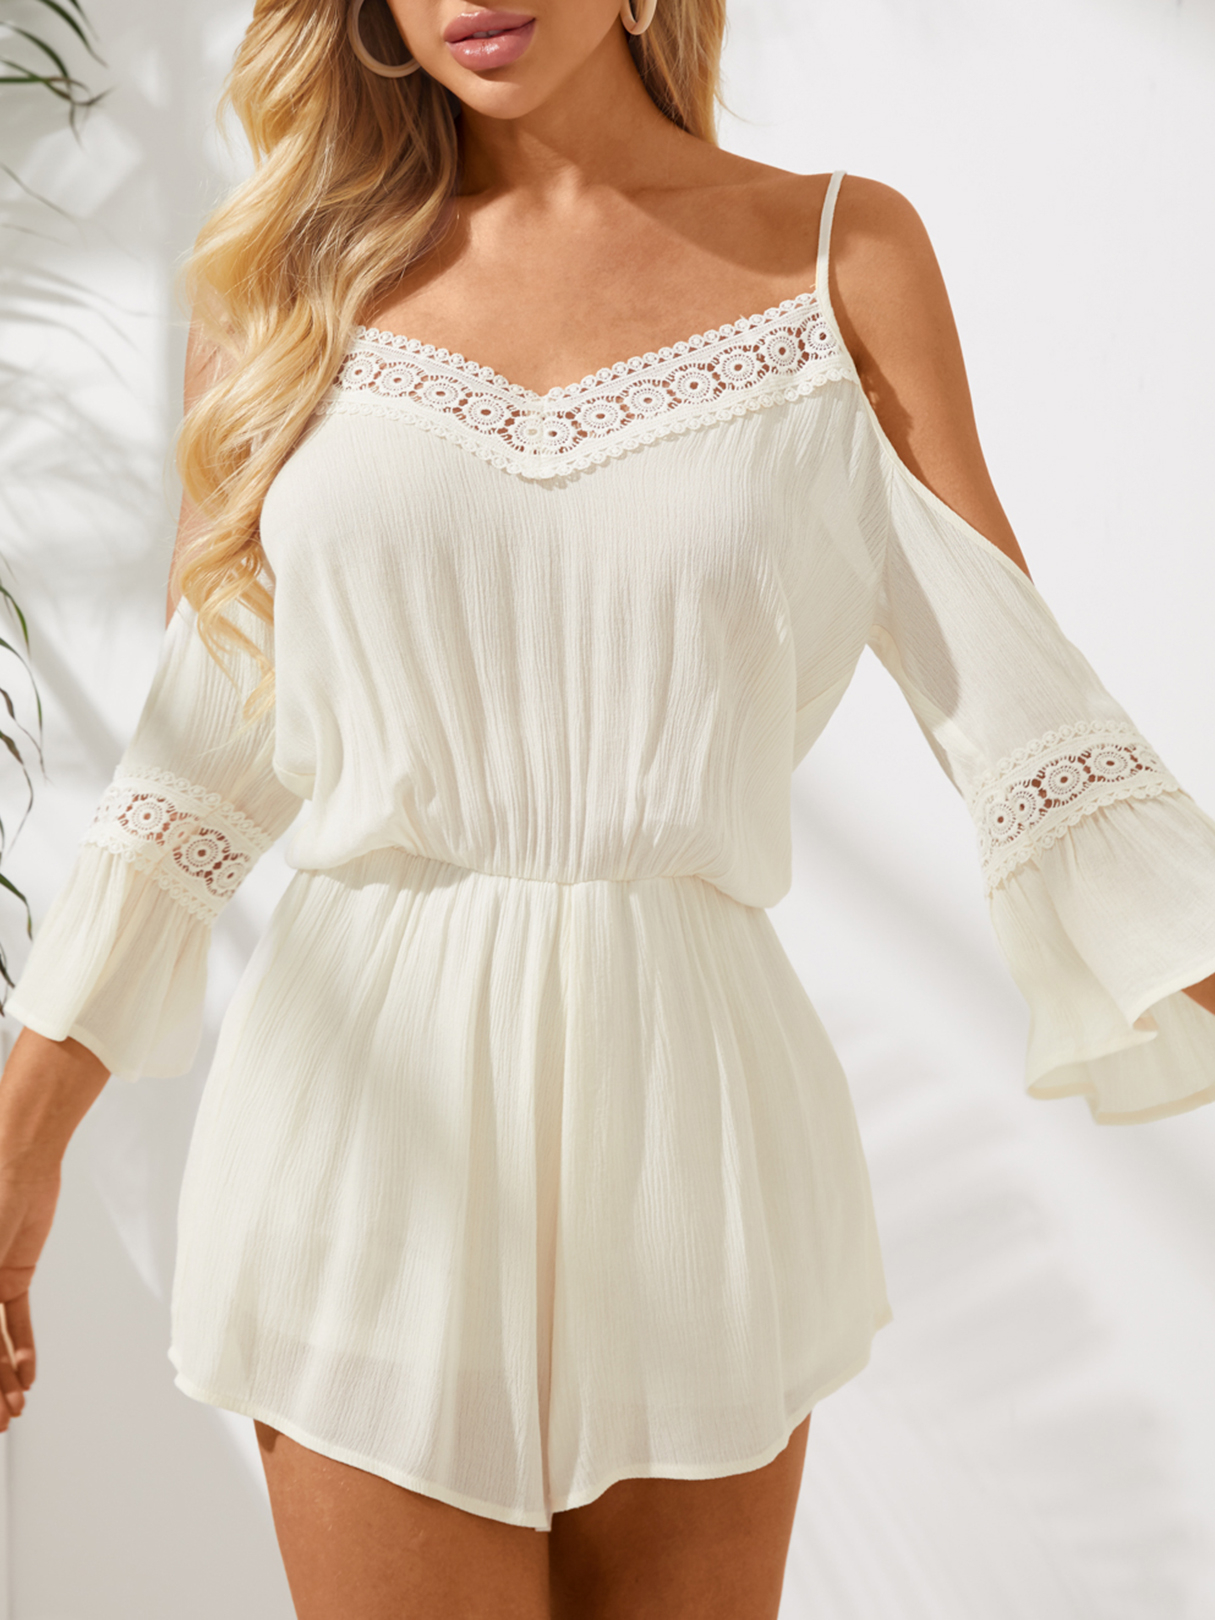 Yoins coupon: Cold Shoulder Playsuits With Lace Insert